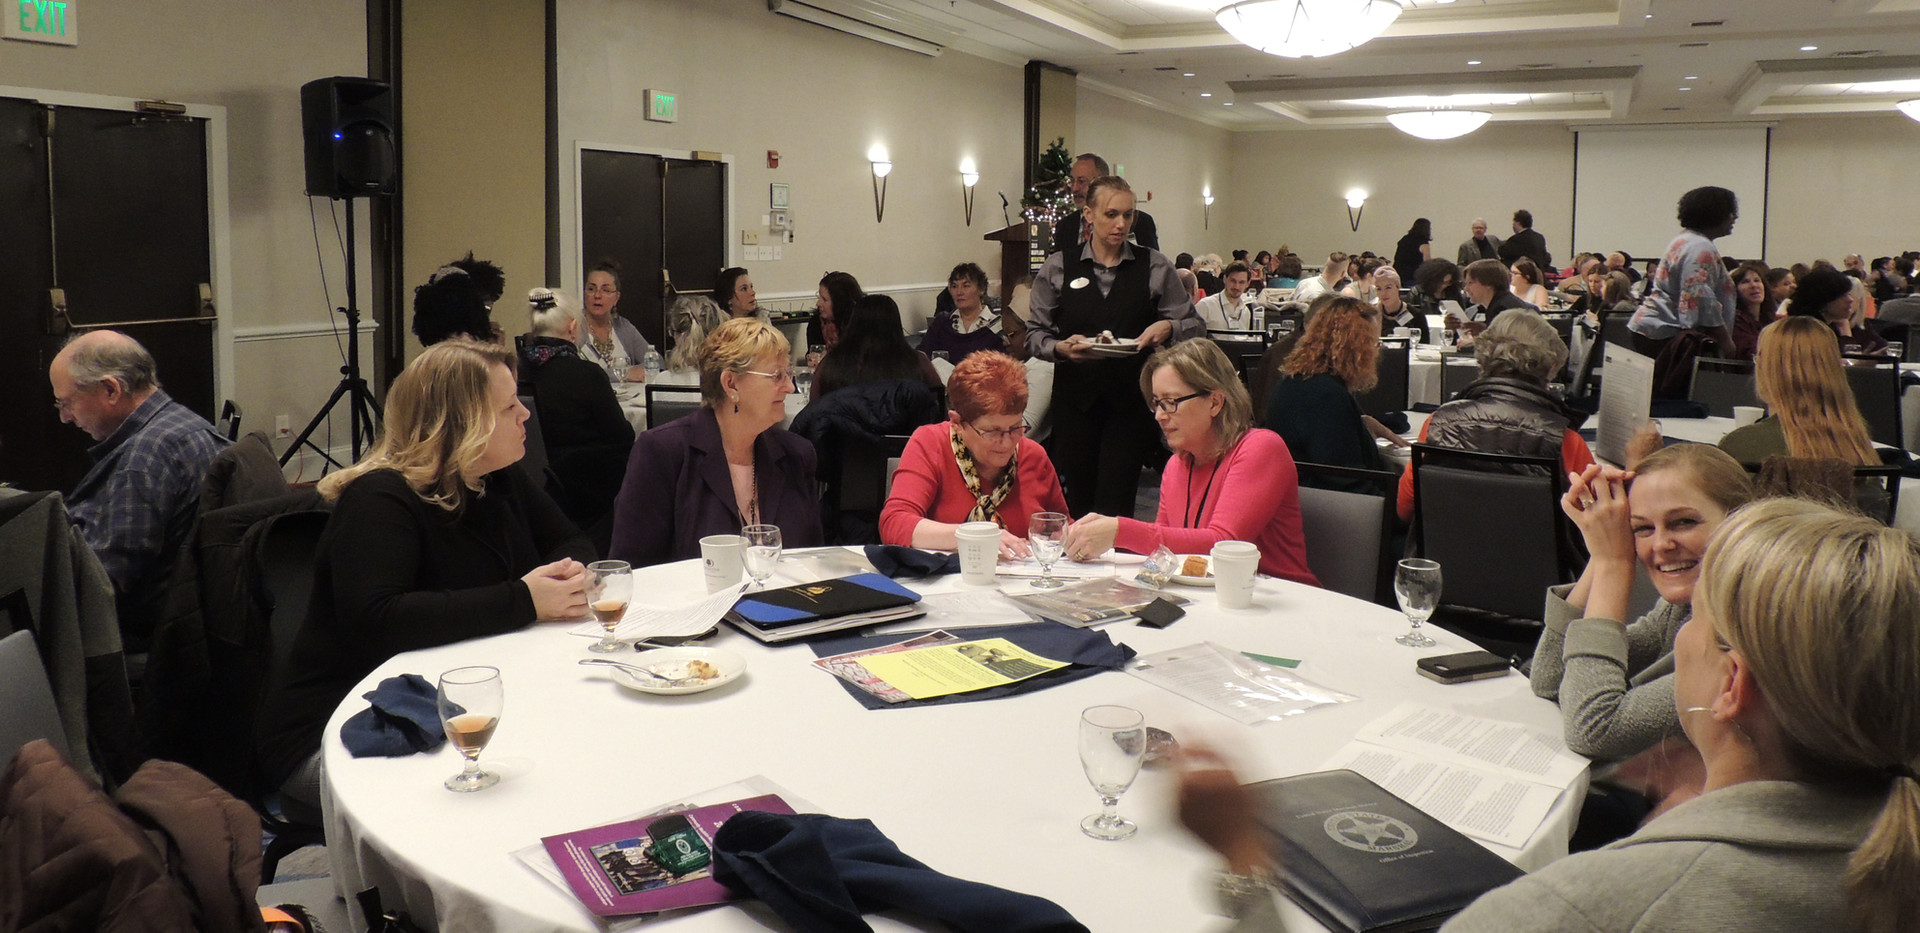 2018 Convention Networking Lunch 001.JPG